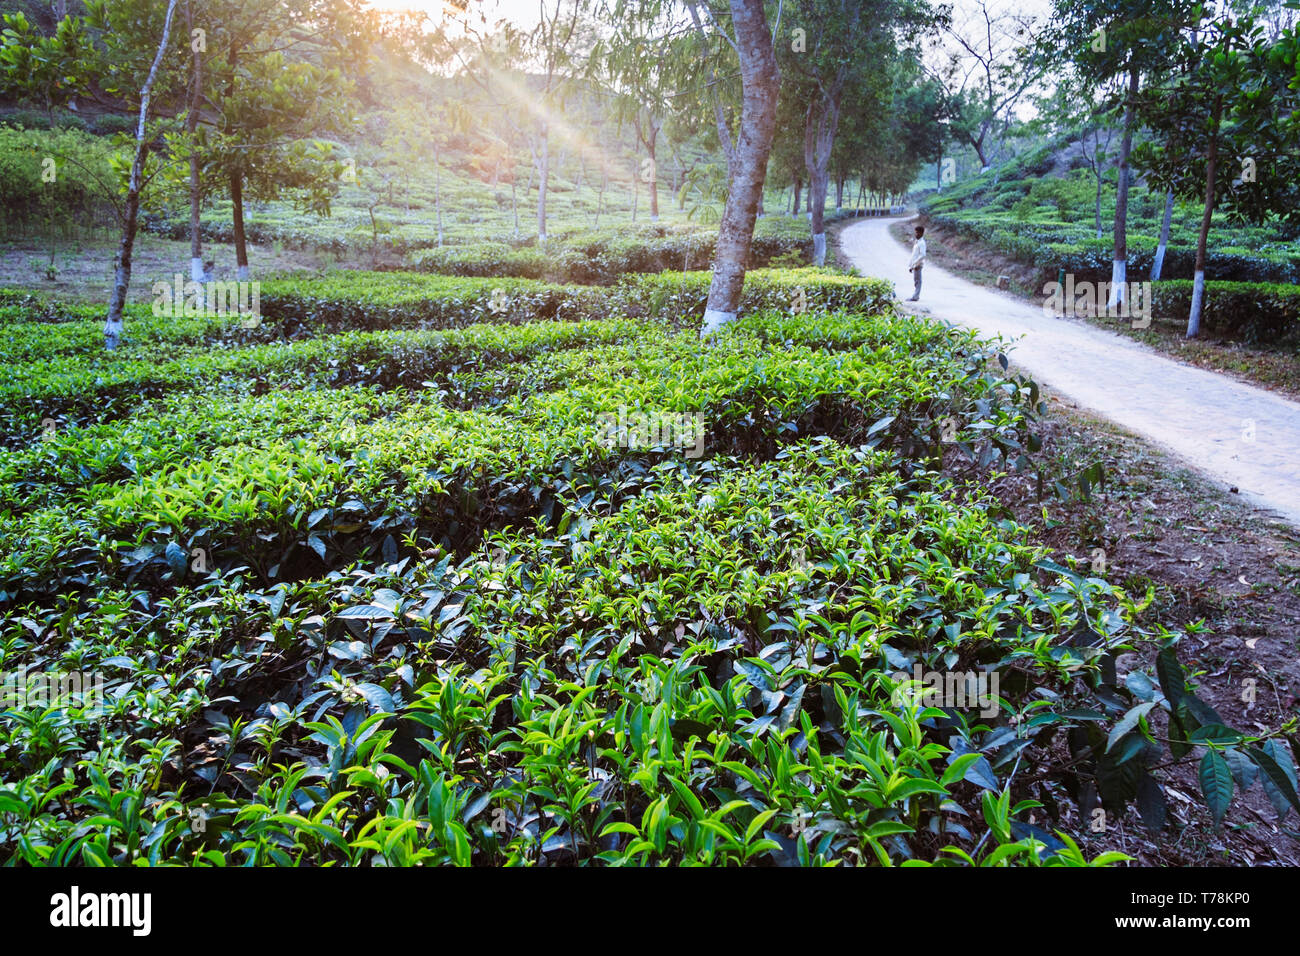 Sreemangal, Sylhet, Bangladesh : A man stands at a road through a tea estate in Srremangal Upazila. With a production of over the 3% of global tea pro - Stock Image